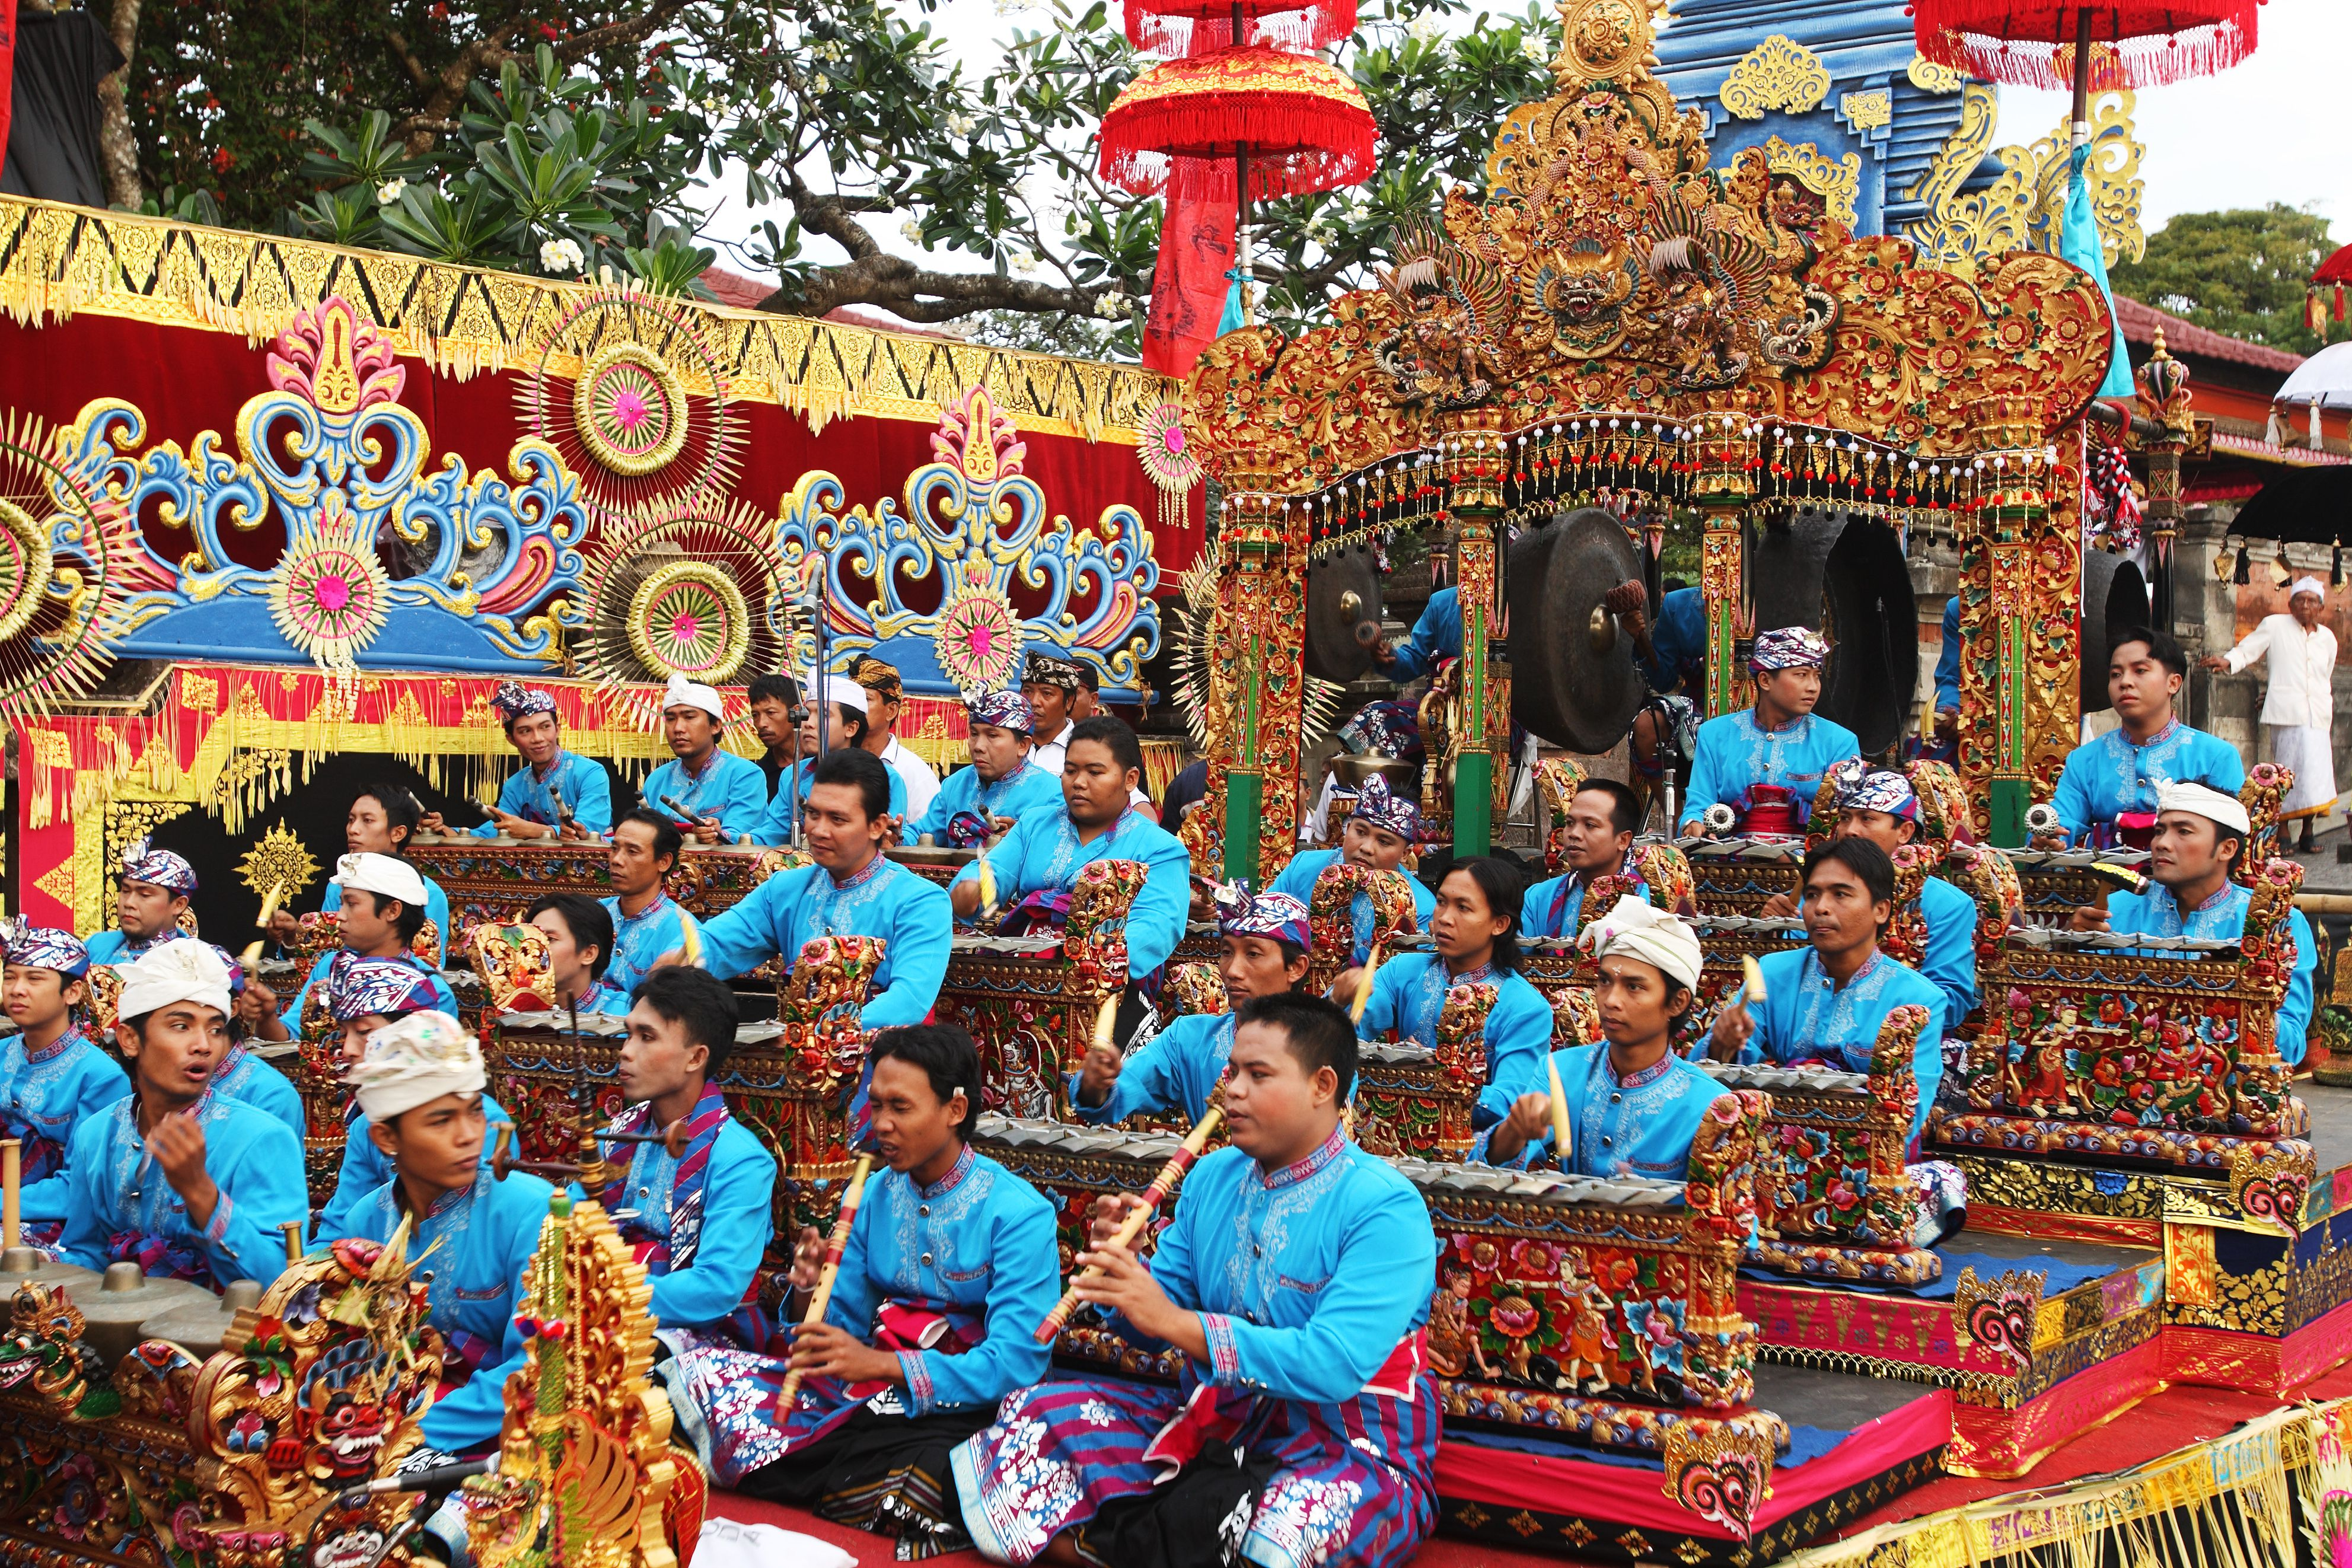 History of Gamelan Indonesian Music and Dance